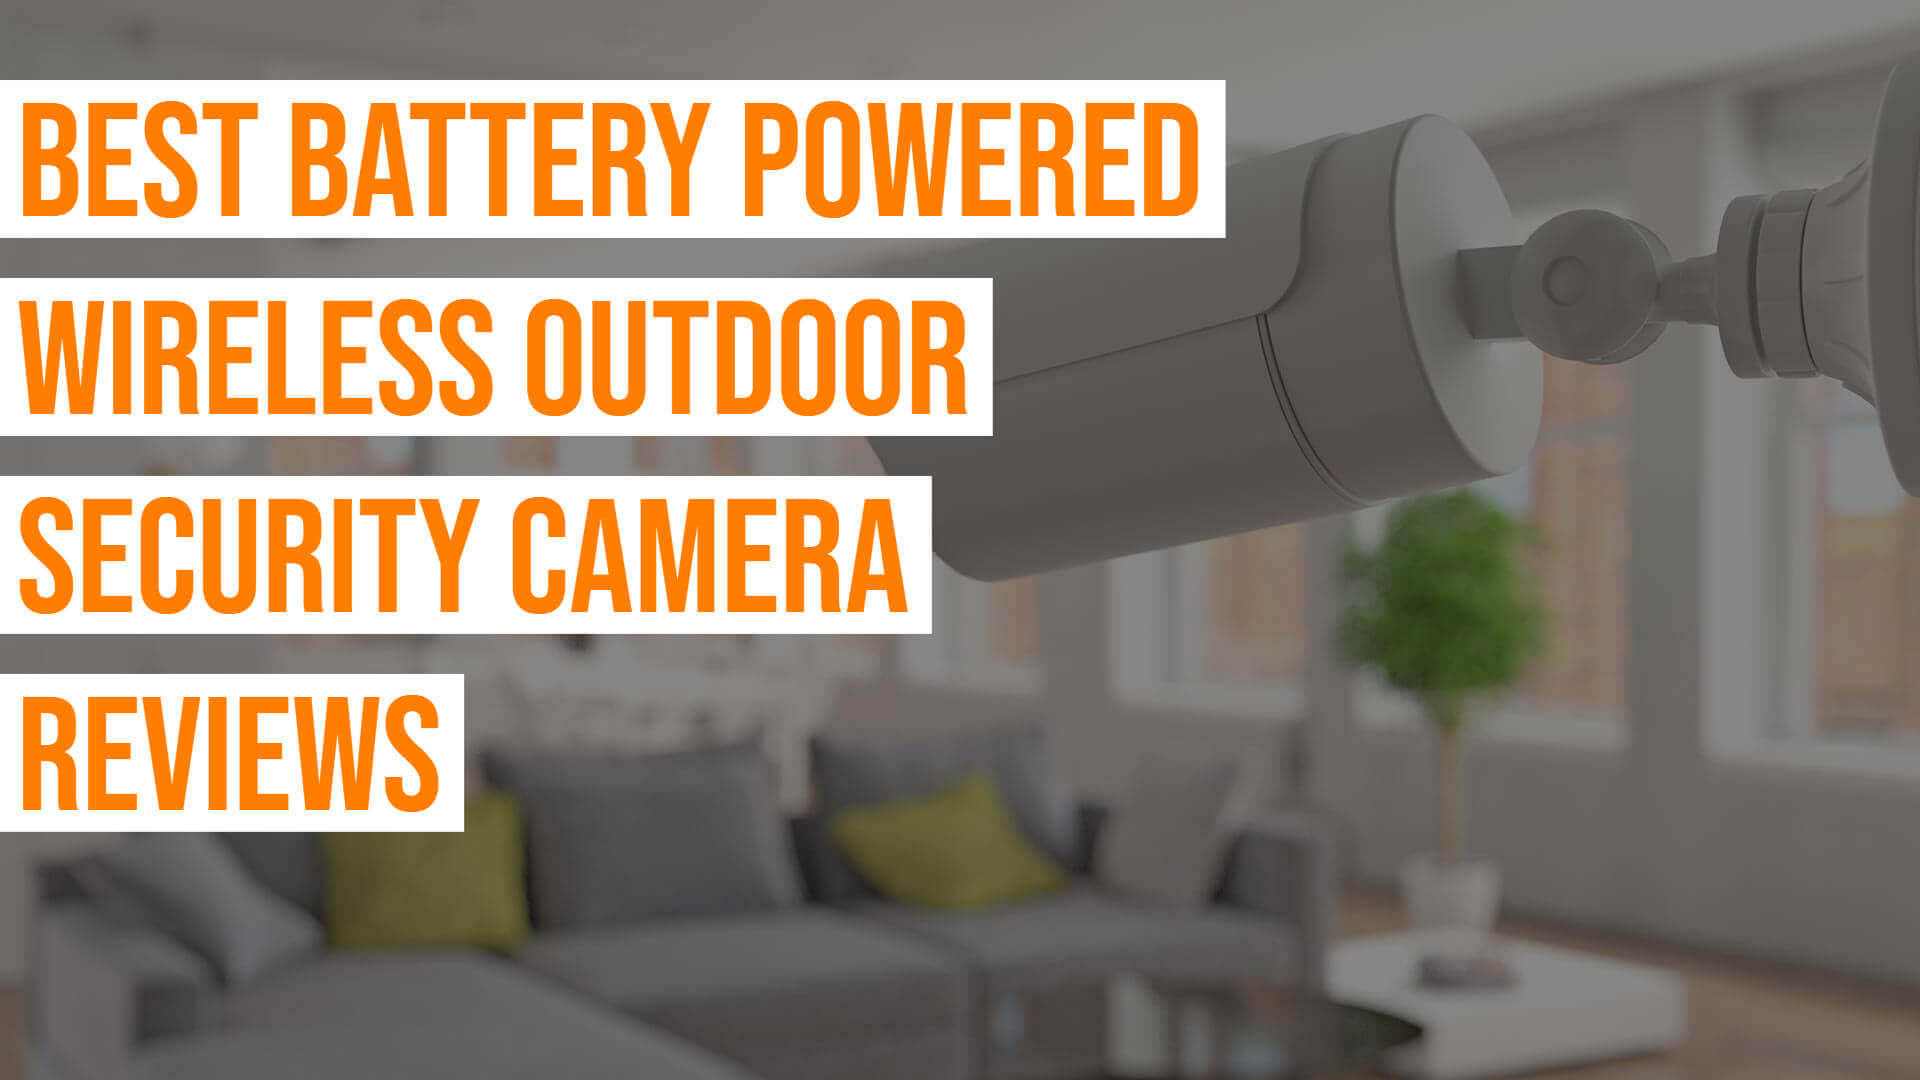 Best Battery Powered Security Camera Reviews